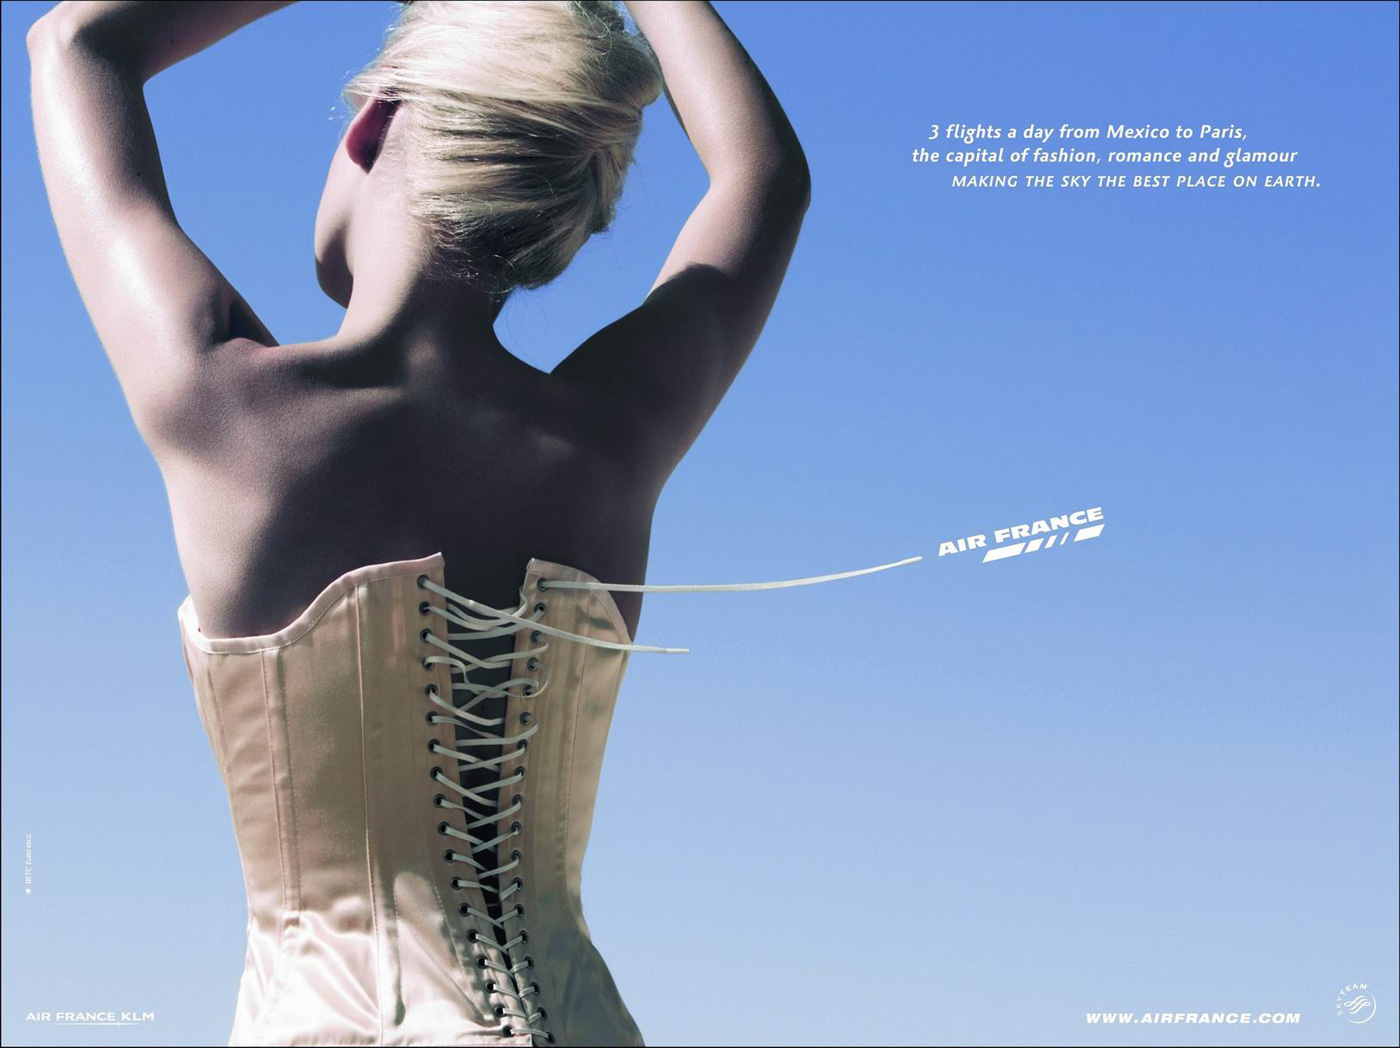 airfrance_corset